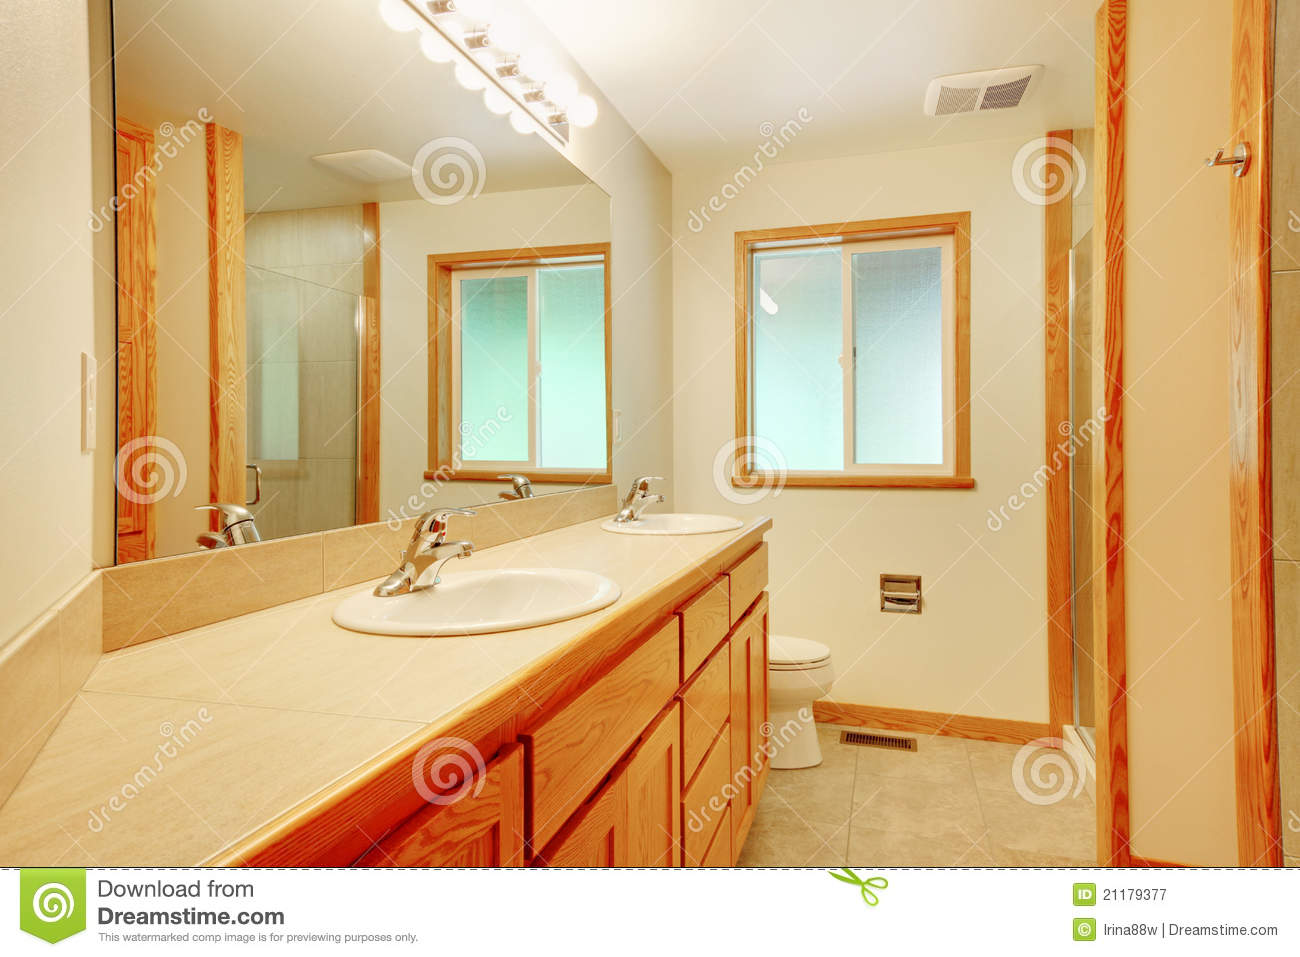 New bathroom with maple wood